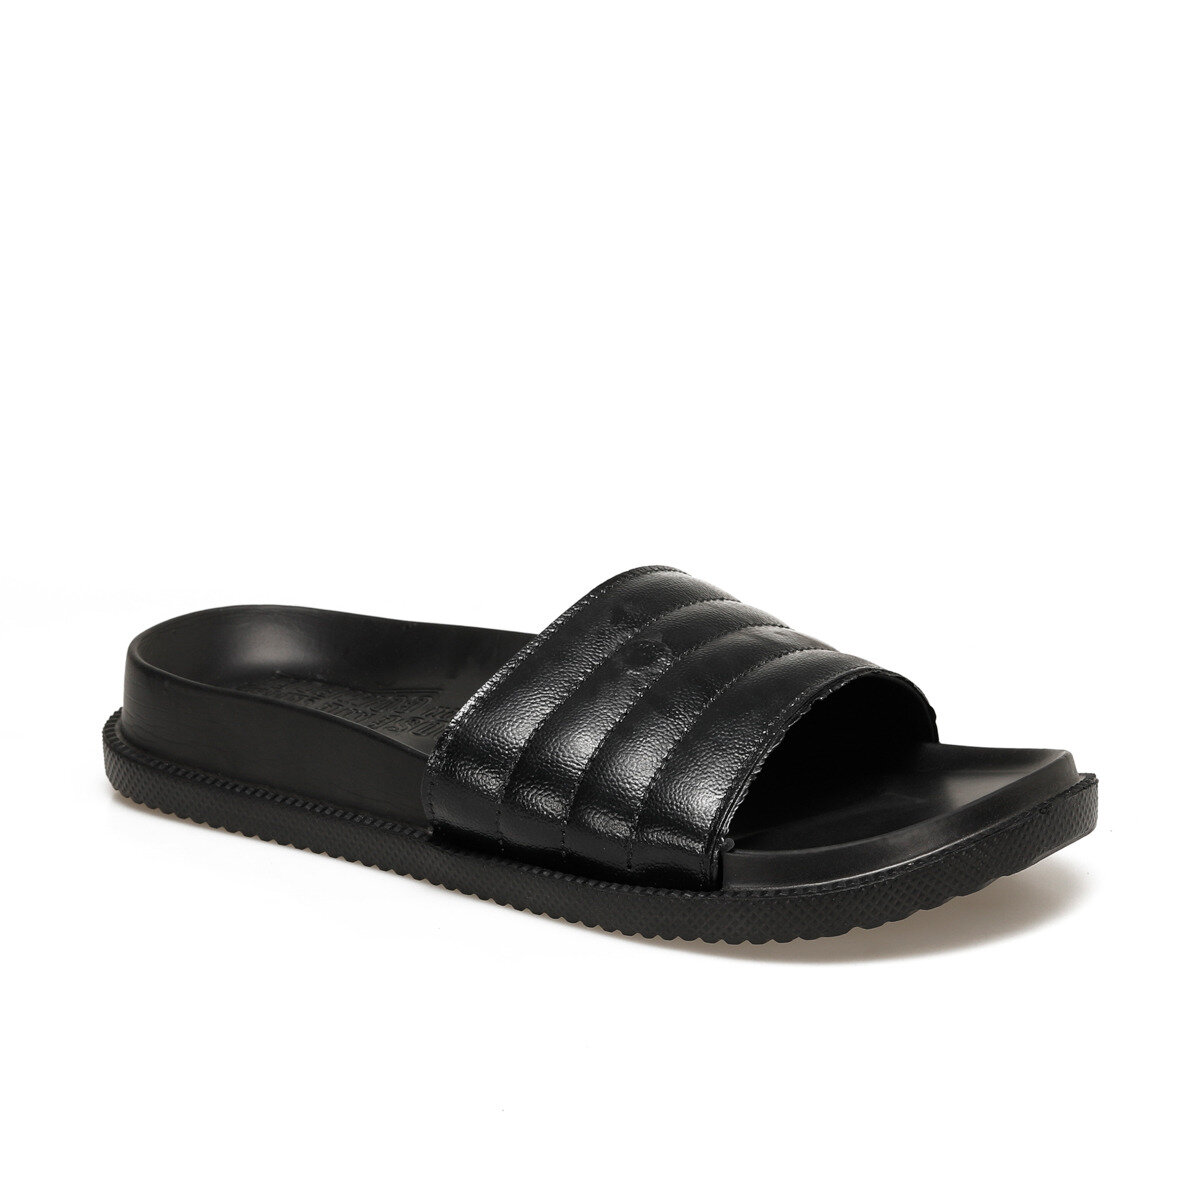 FLO 81.452204.M Black Male Slippers Polaris